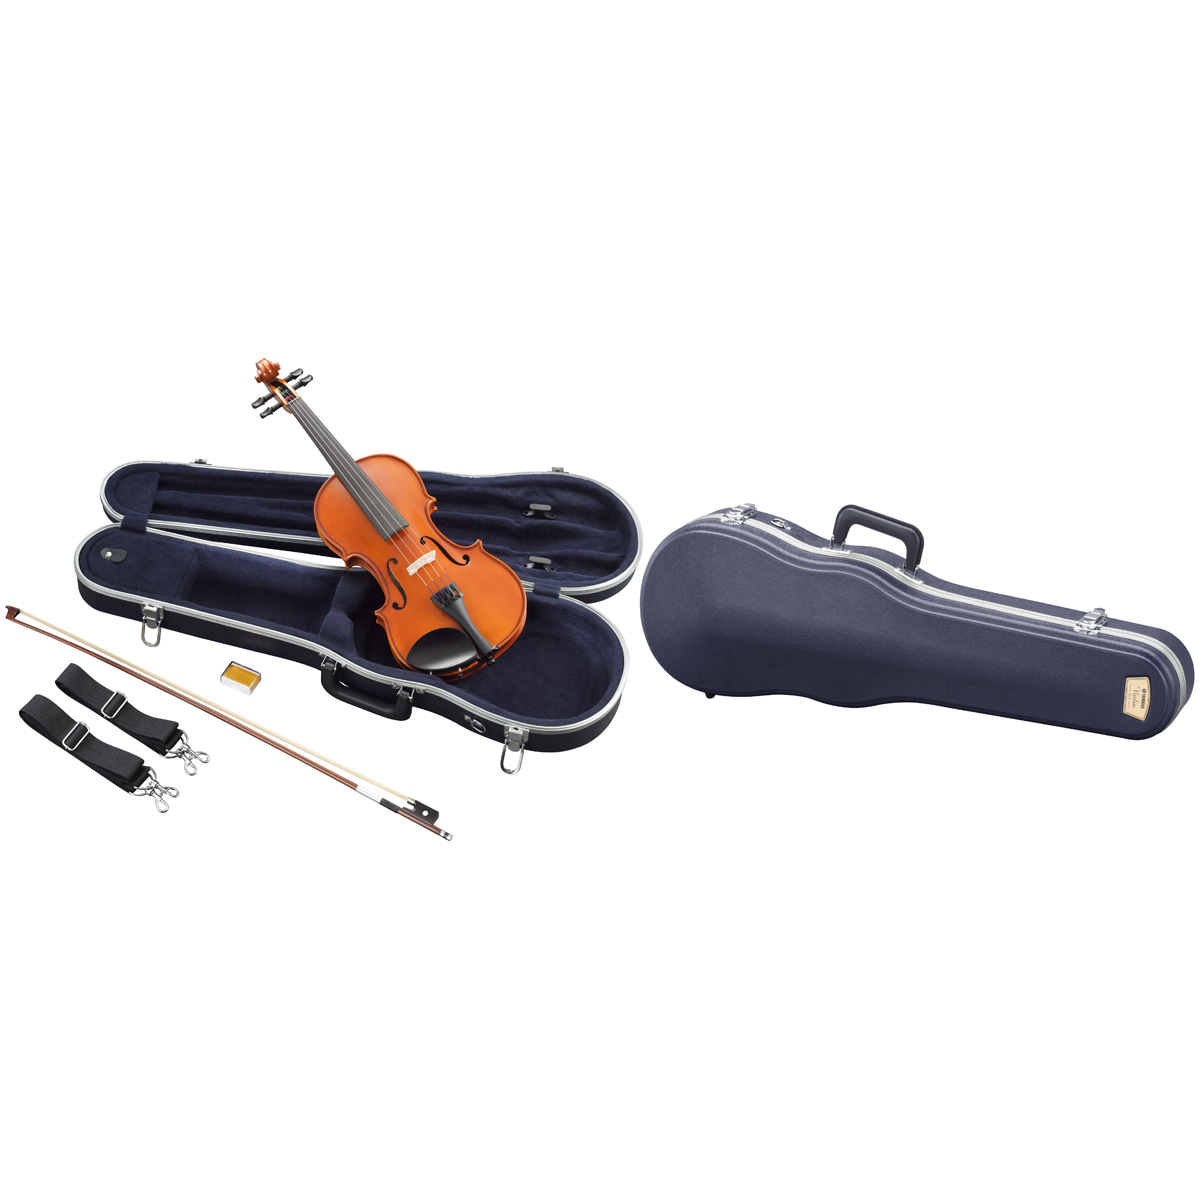 Sets include lightweight case, bow and rosin